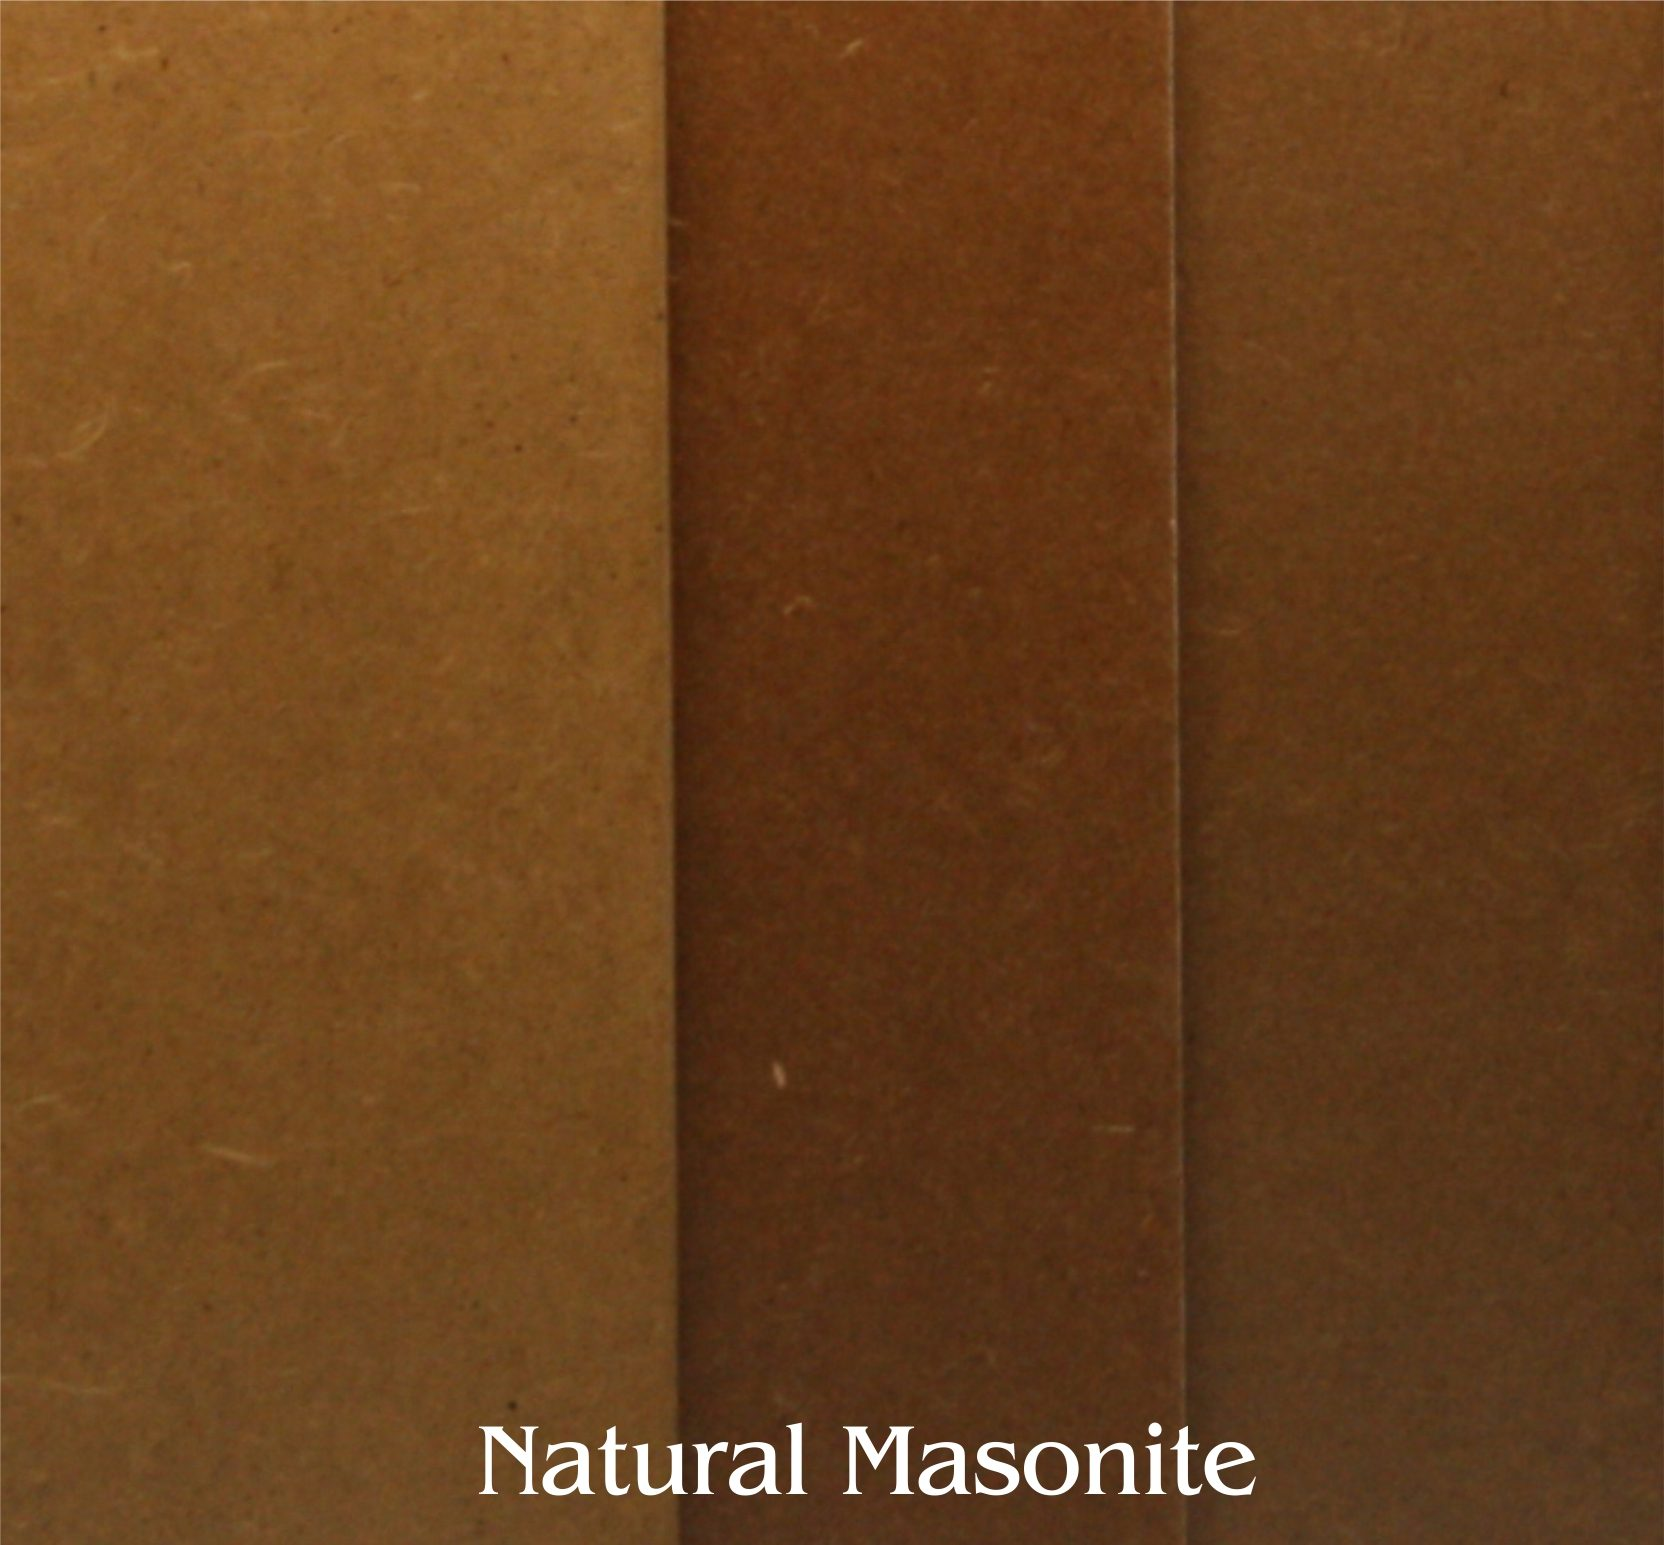 "Baltic Birch Ply or Masonite or MDF Strip<br/> 6"" x 24"" x<br/> (1/8"" or 1/4"") - BBPLY5-BB-1/8-F"